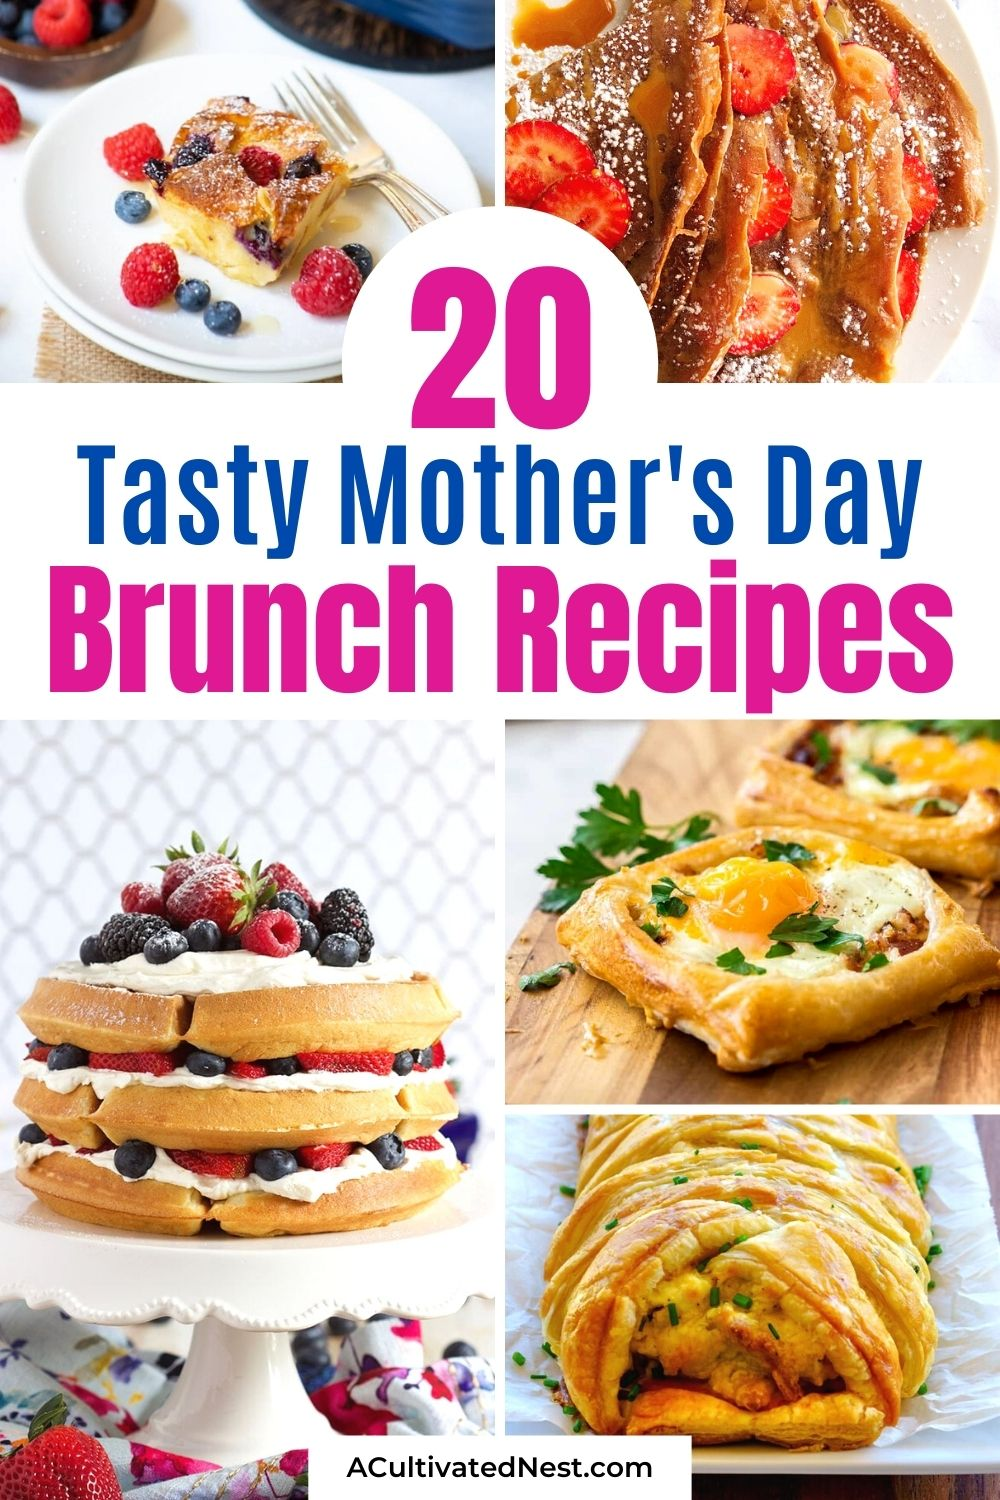 20 Delicious Mother's Day Brunch Recipes- Make Mom feel loved this Mother's Day with these 20 delicious Mother's Day brunch recipes! They are so easy to make, too! | #brunchRecipes #mothersDay #brunch #breakfastRecipes #ACultivatedNest